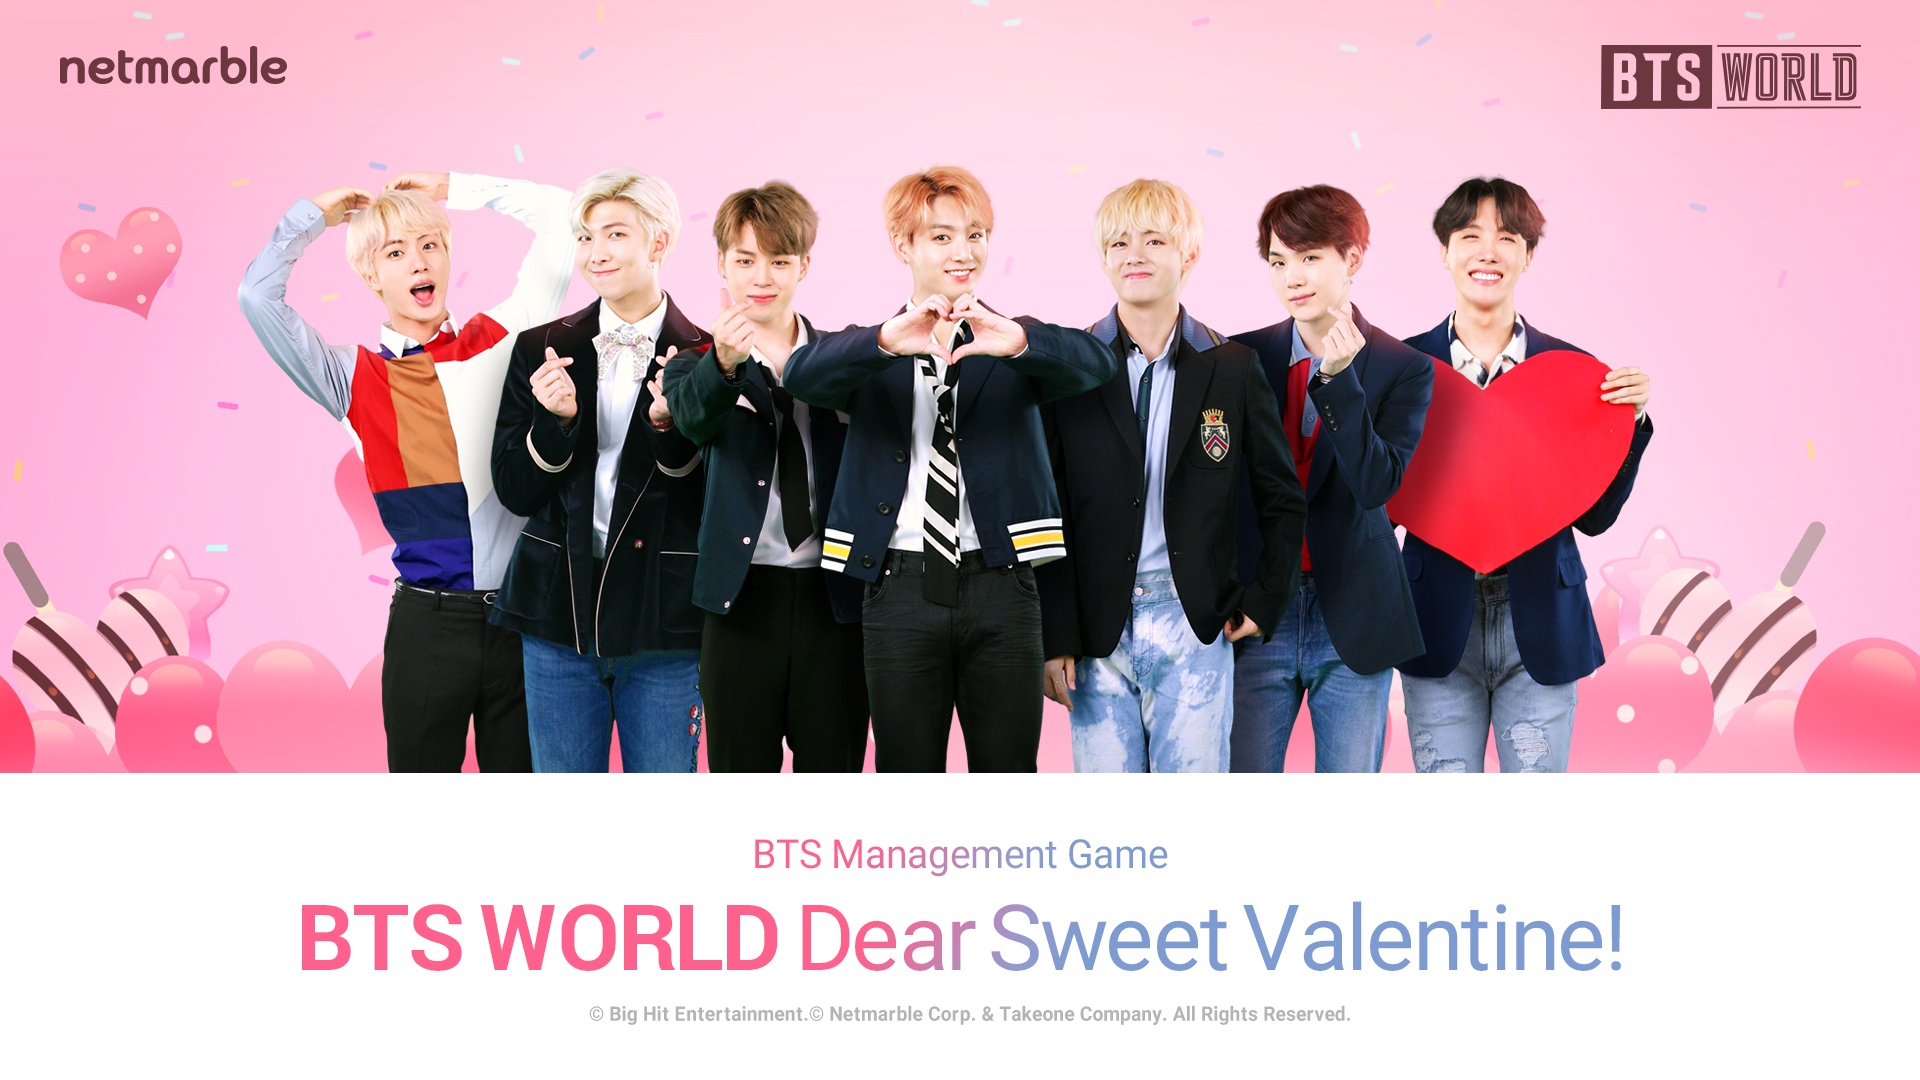 LOVE IS IN THE AIR WITH THE BTS WORLD  VALENTINE'S DAY UPDATE